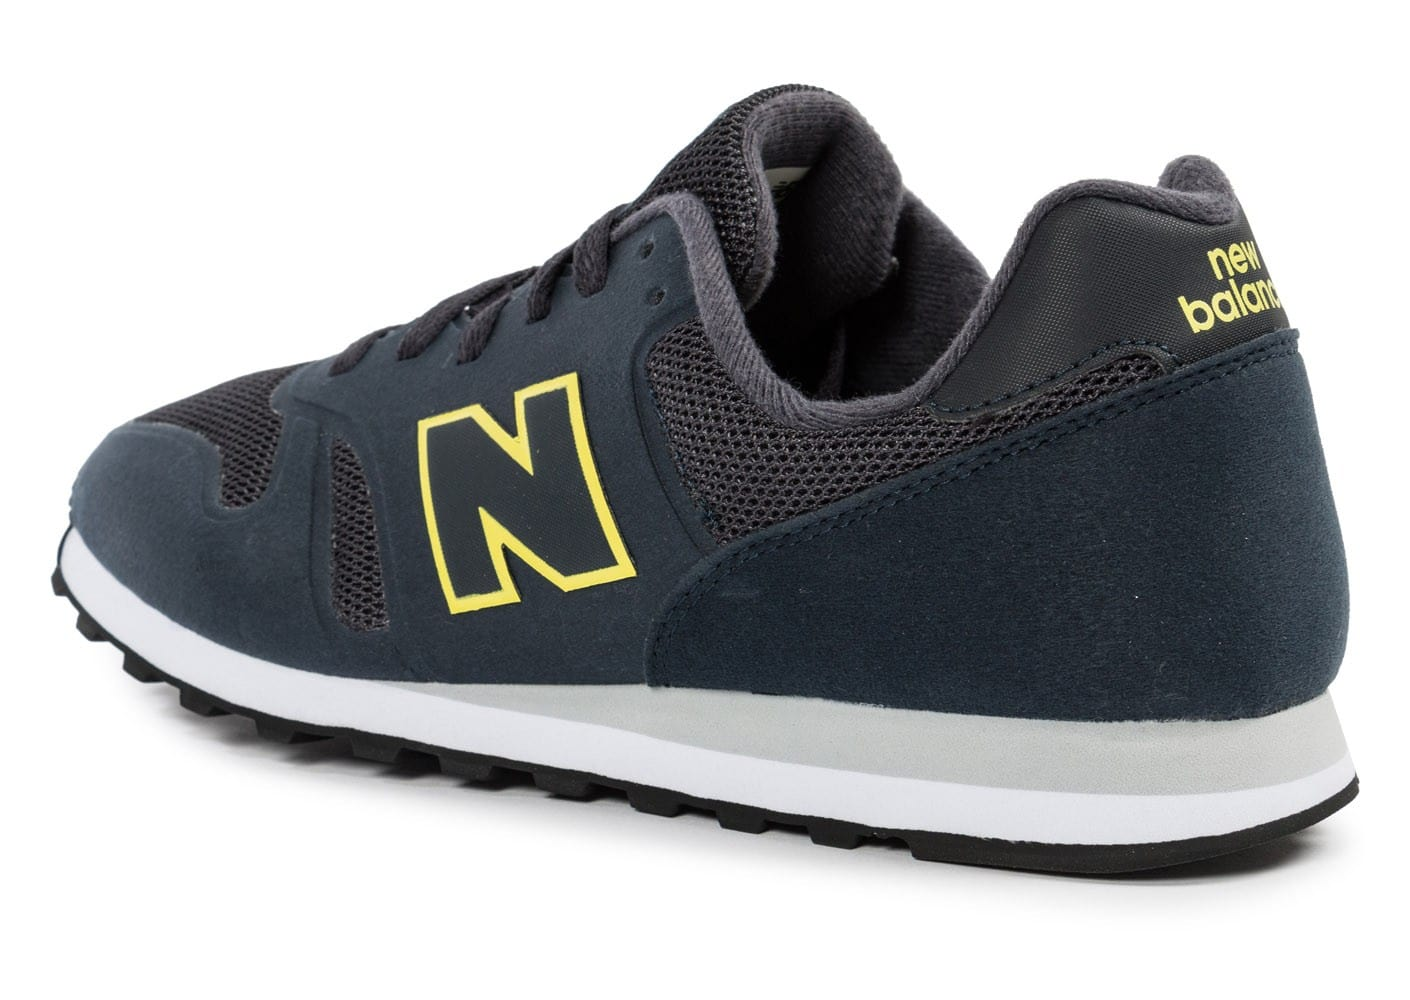 check out a3010 903ef 0538-chaussures-new-balance-md373-ny-bleu-marine-vue-arriere 1.jpg